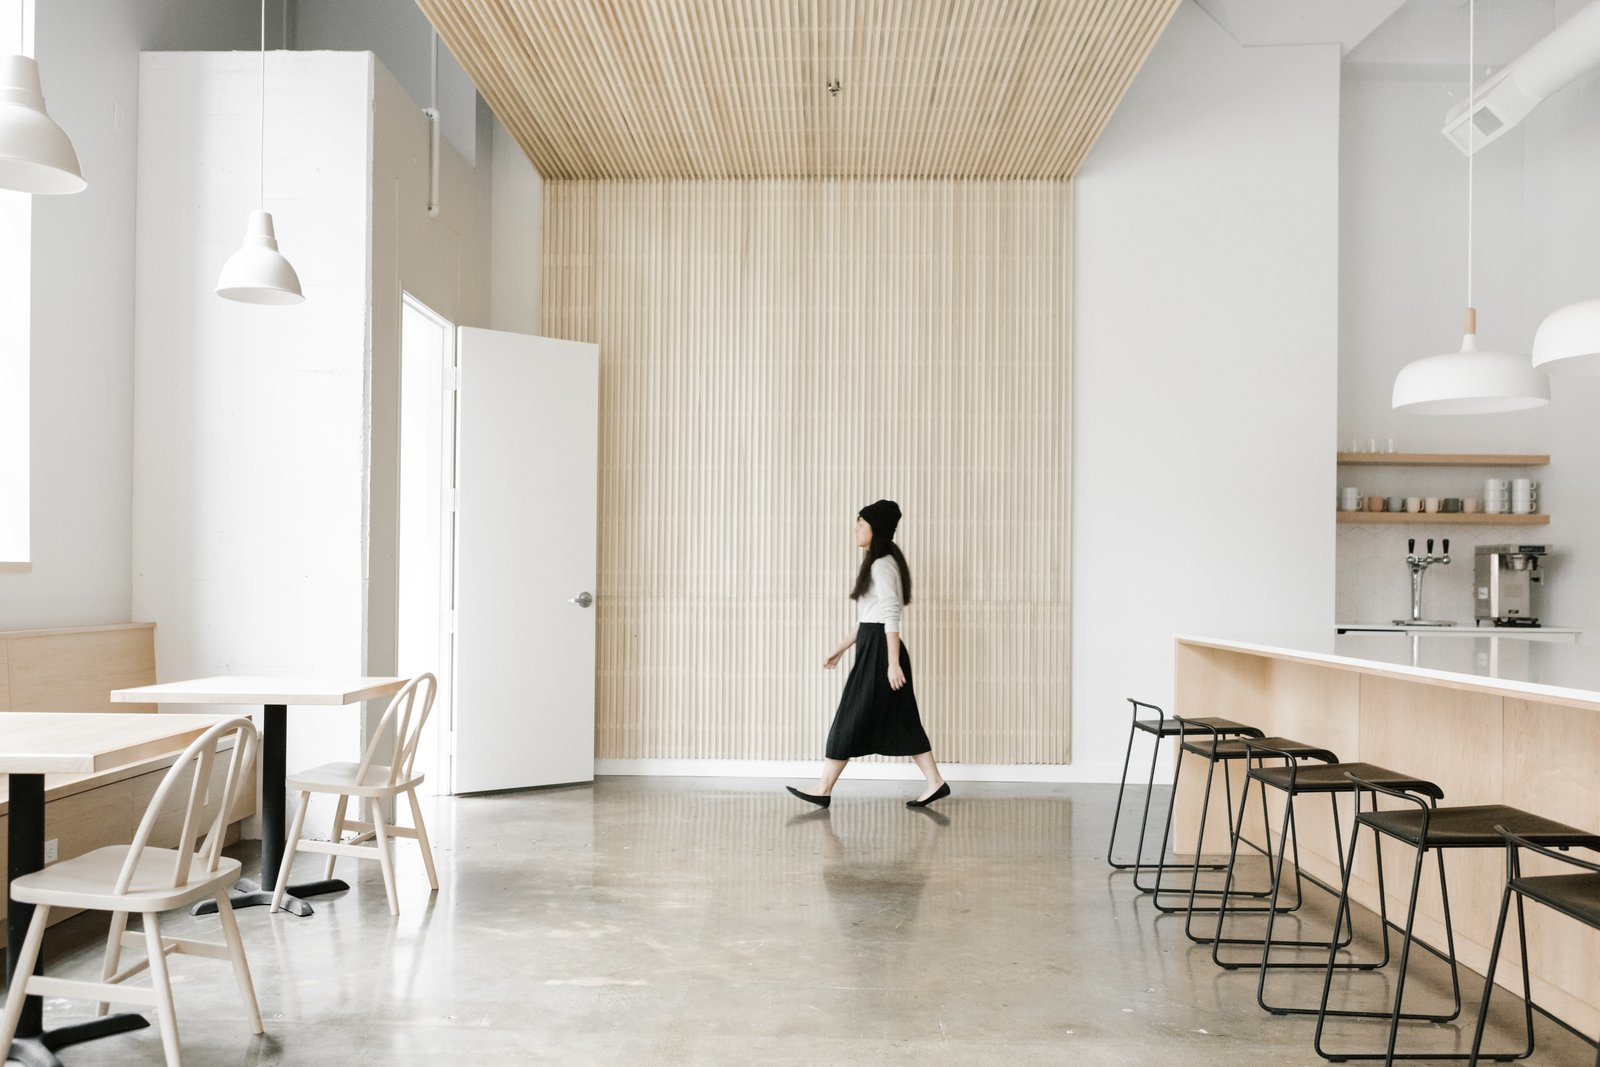 Casework Transforms an Industrial Building Into a Sleek, Contemporary Workspace